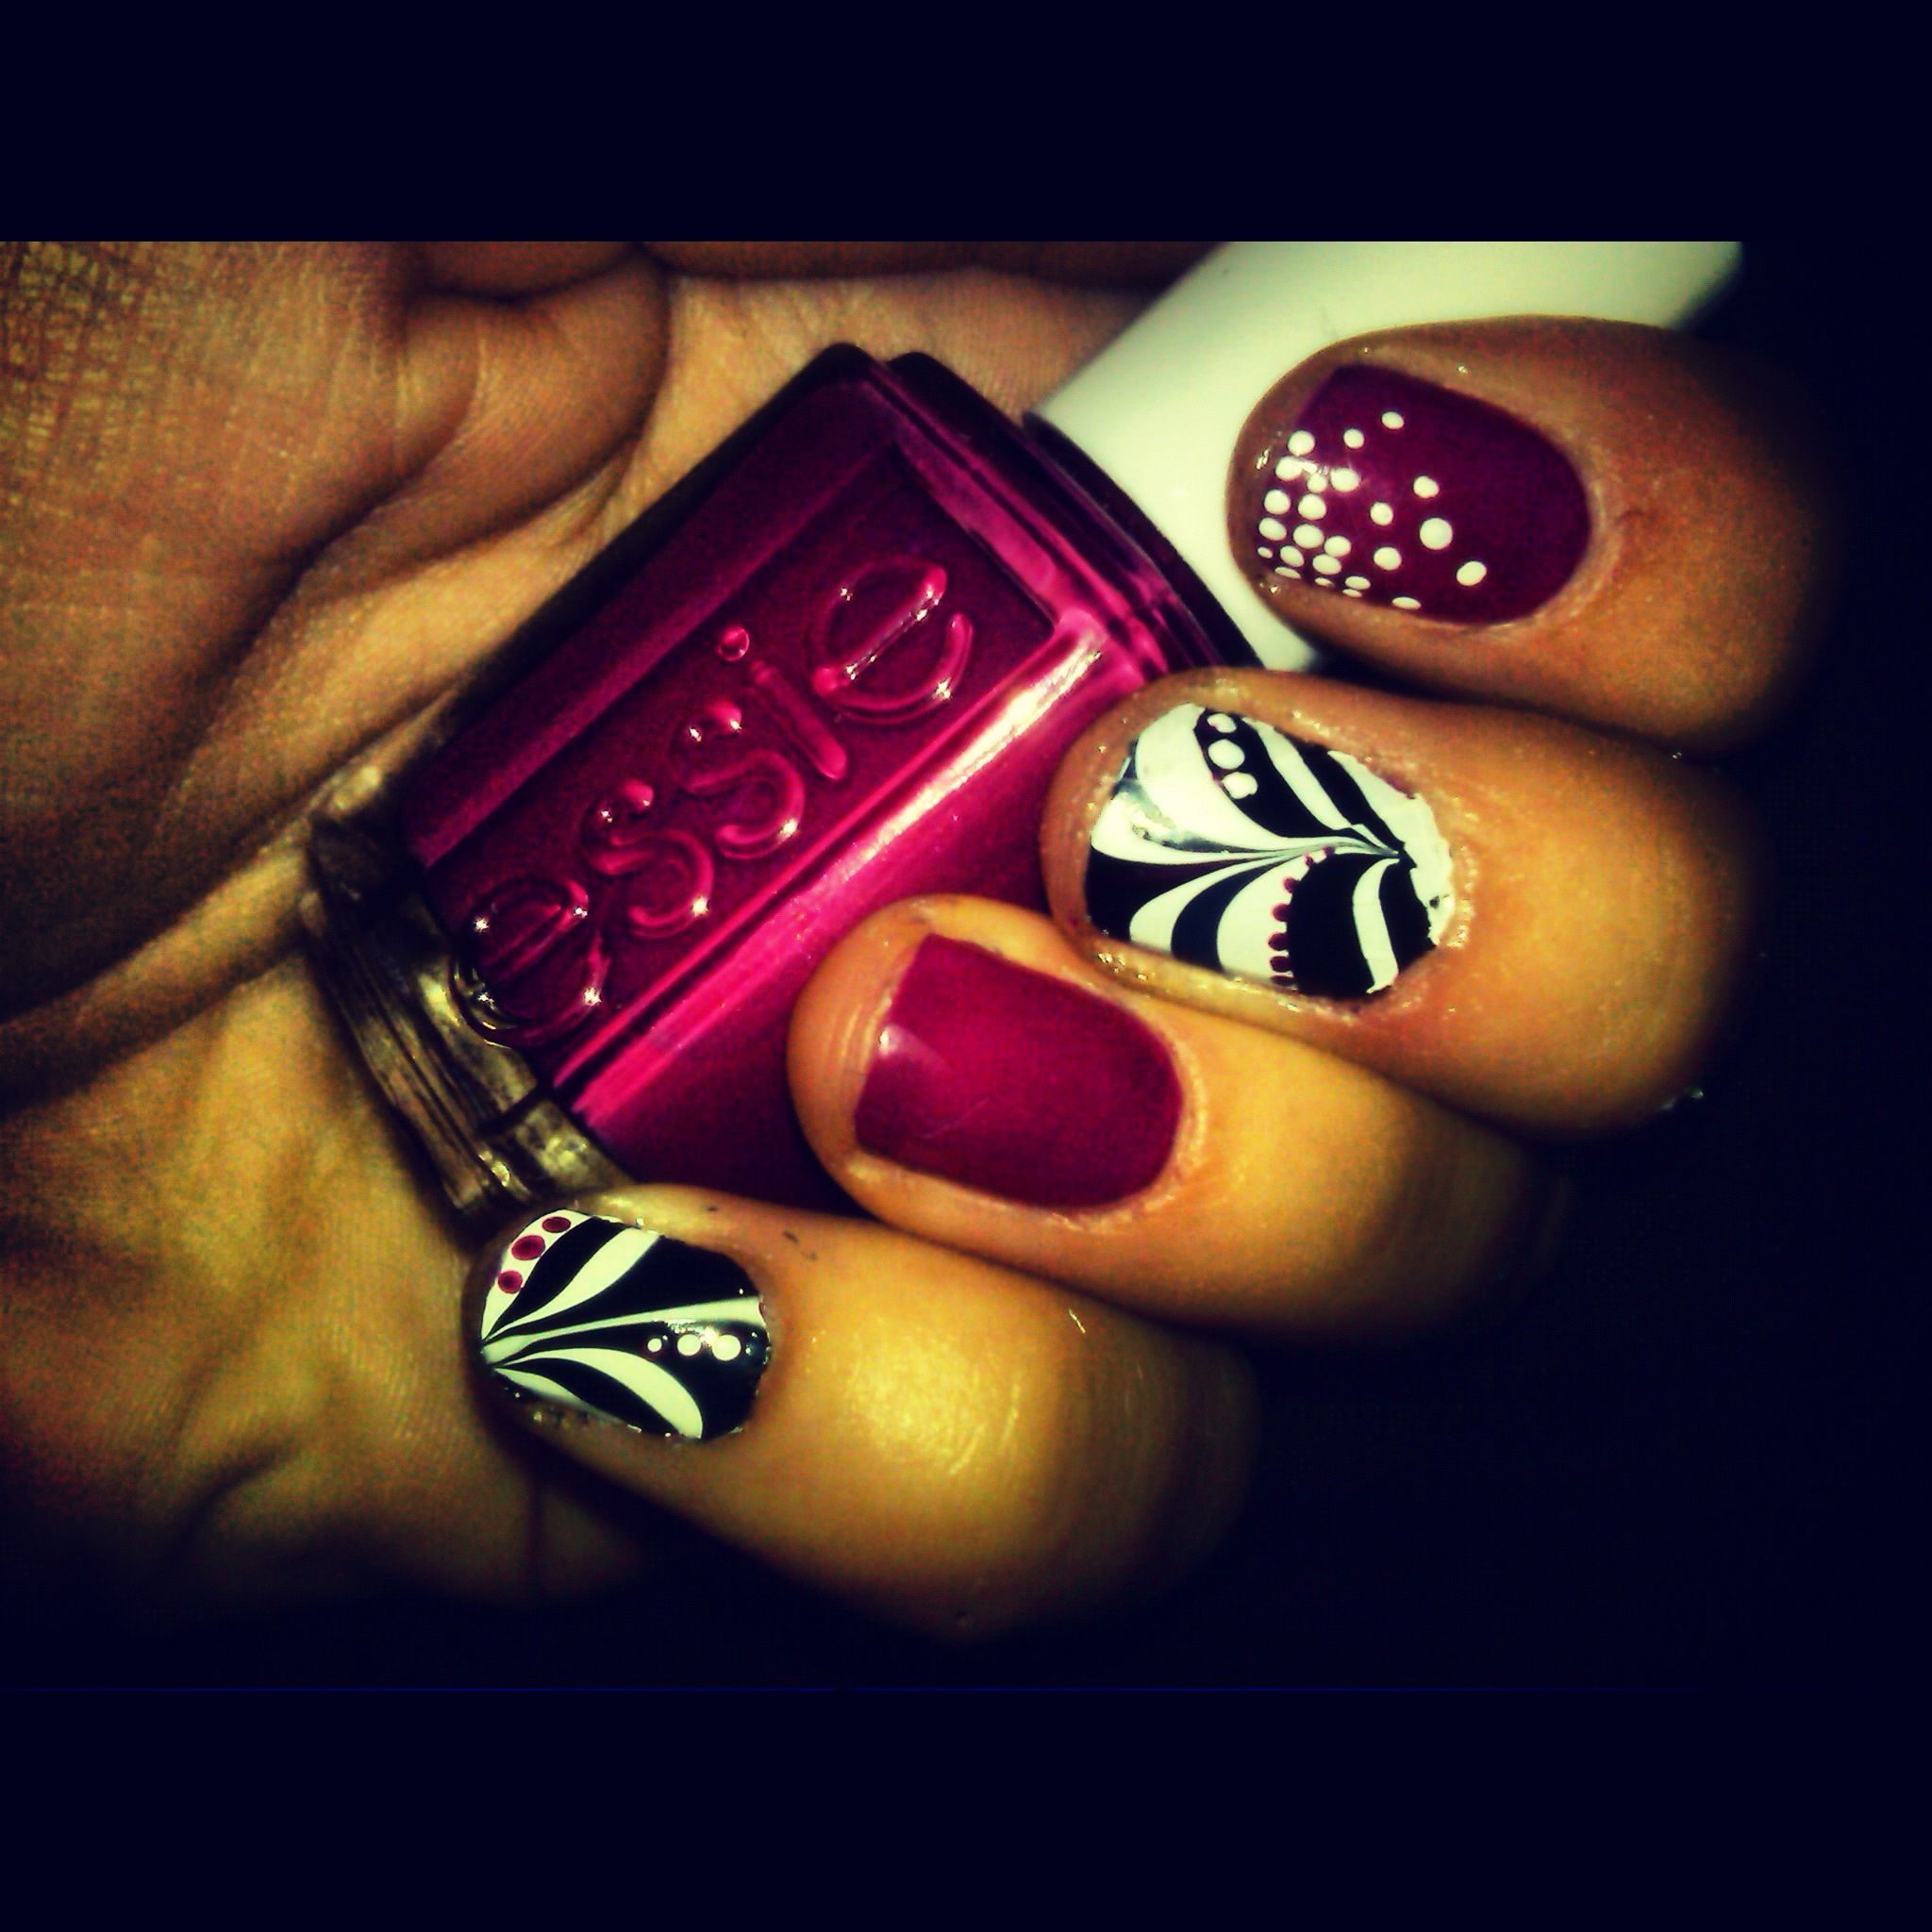 marbled my nails